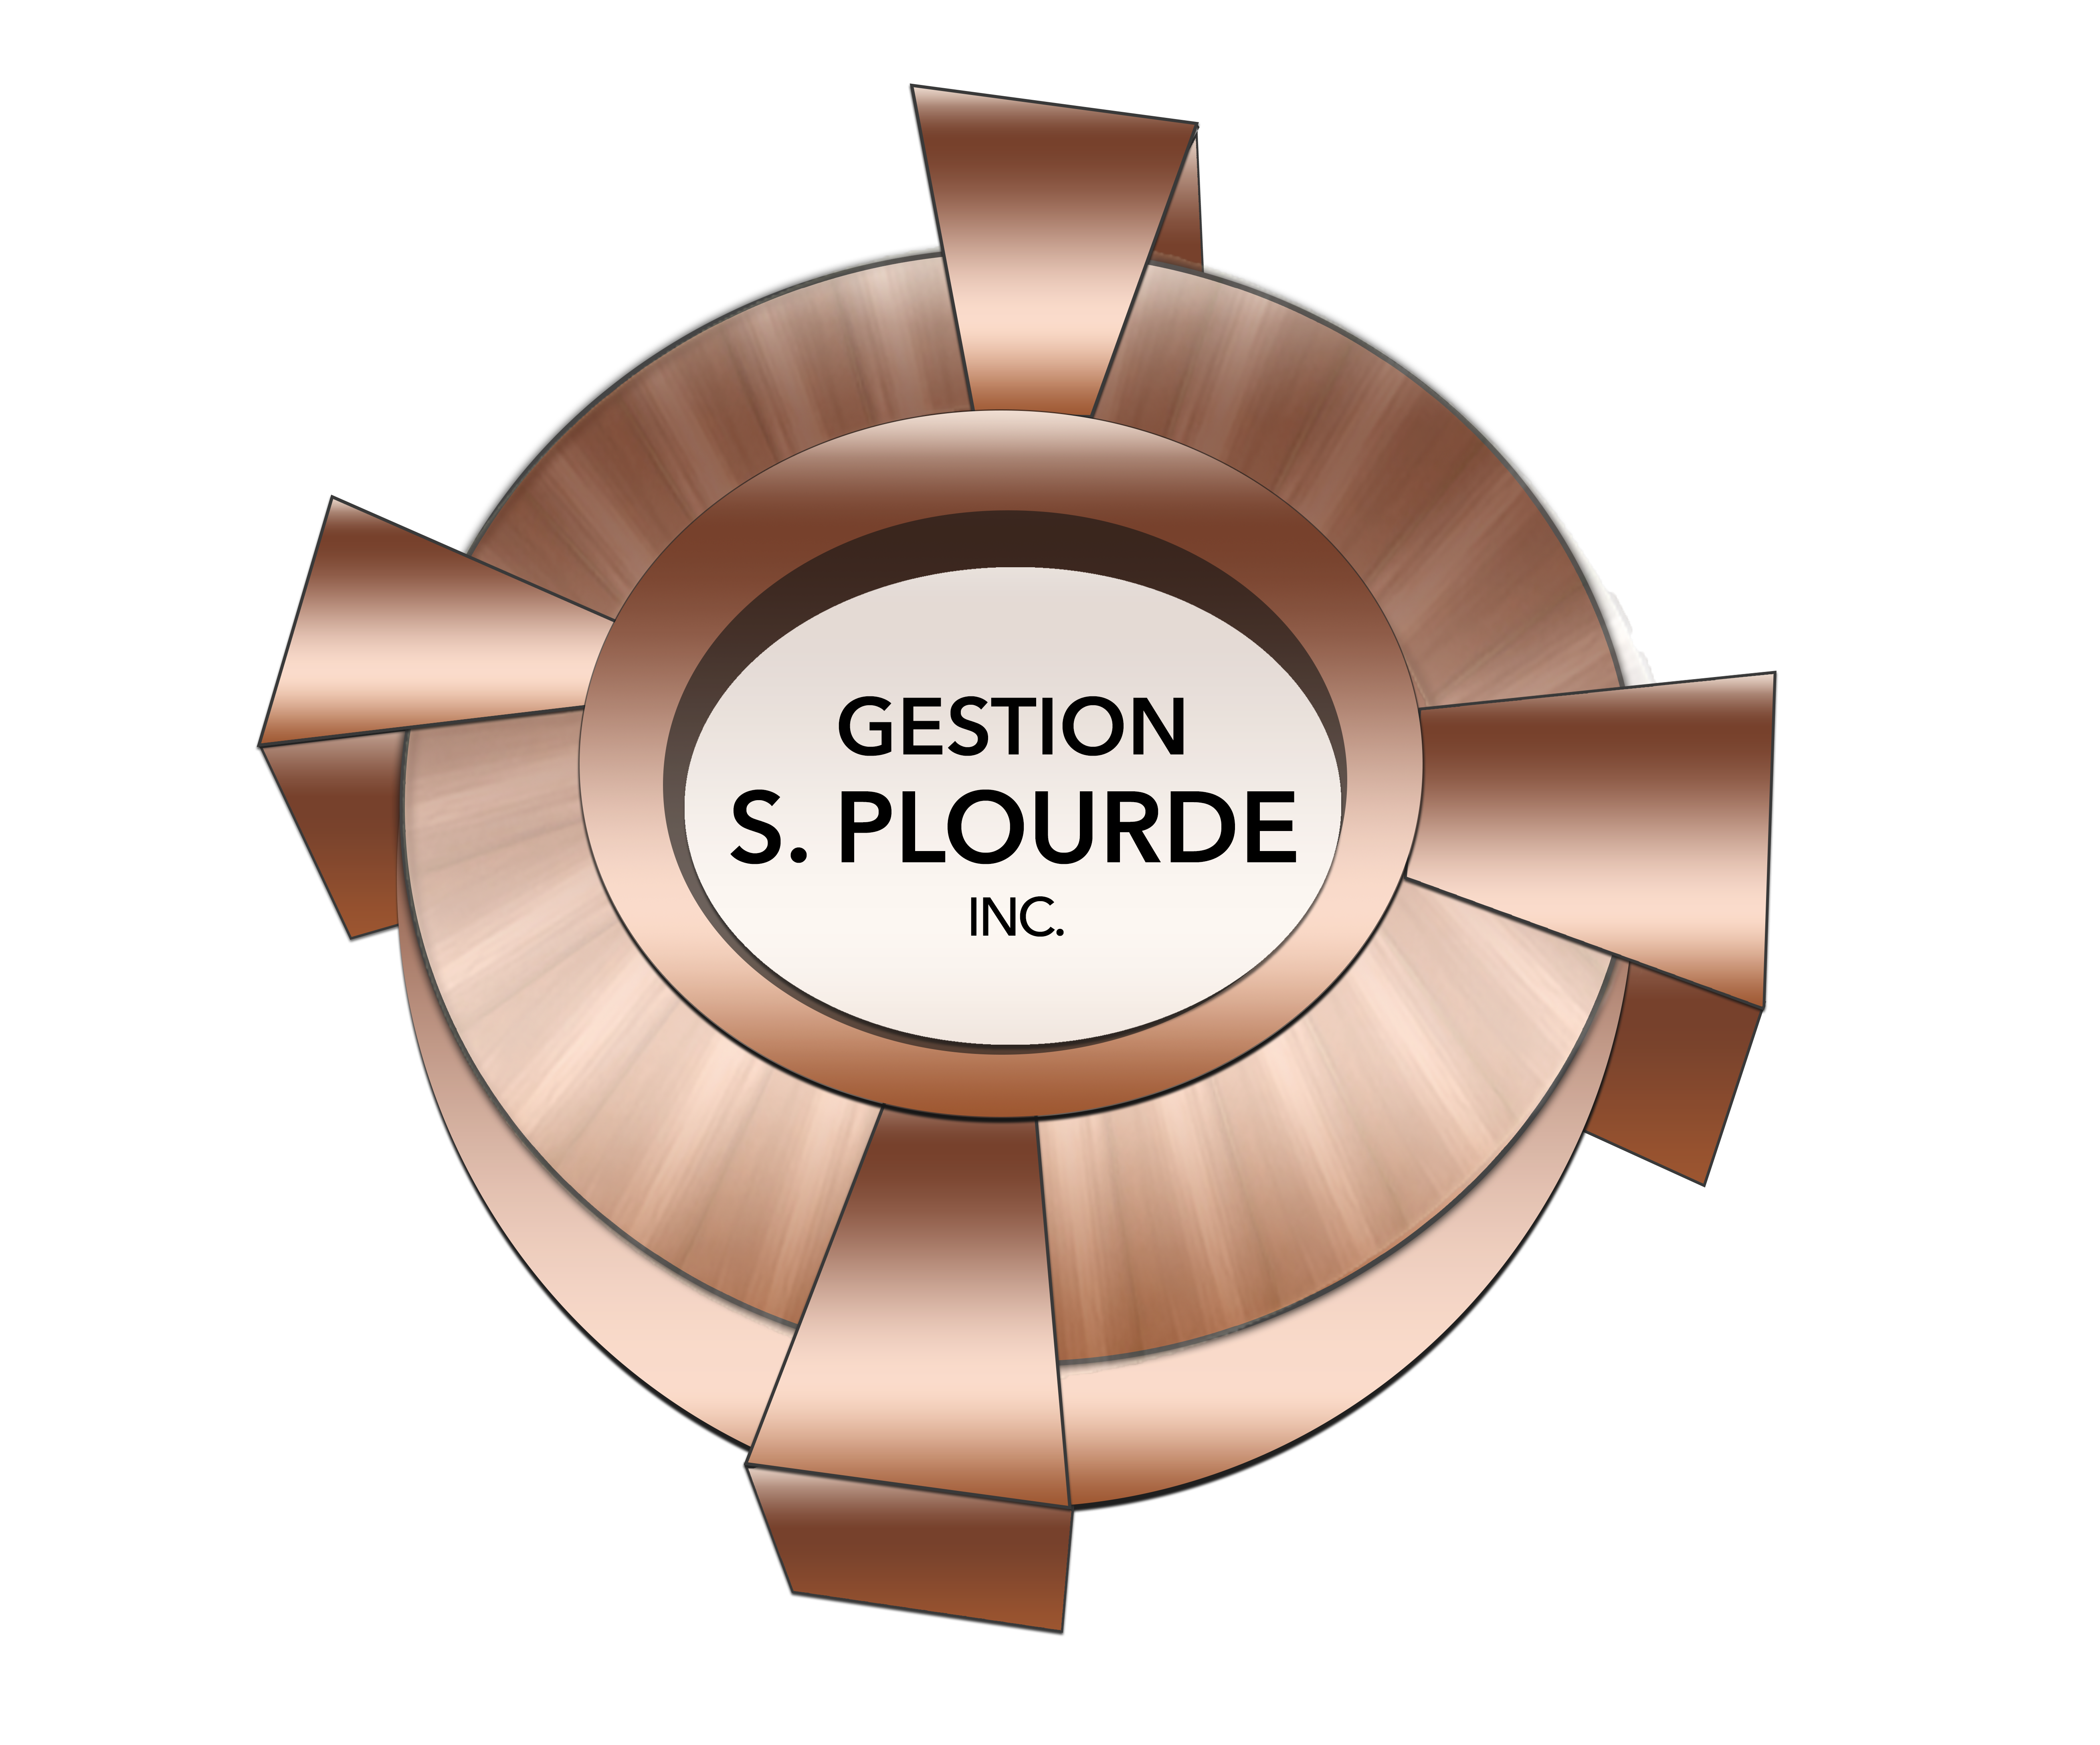 Gestion S. Plourde Inc.